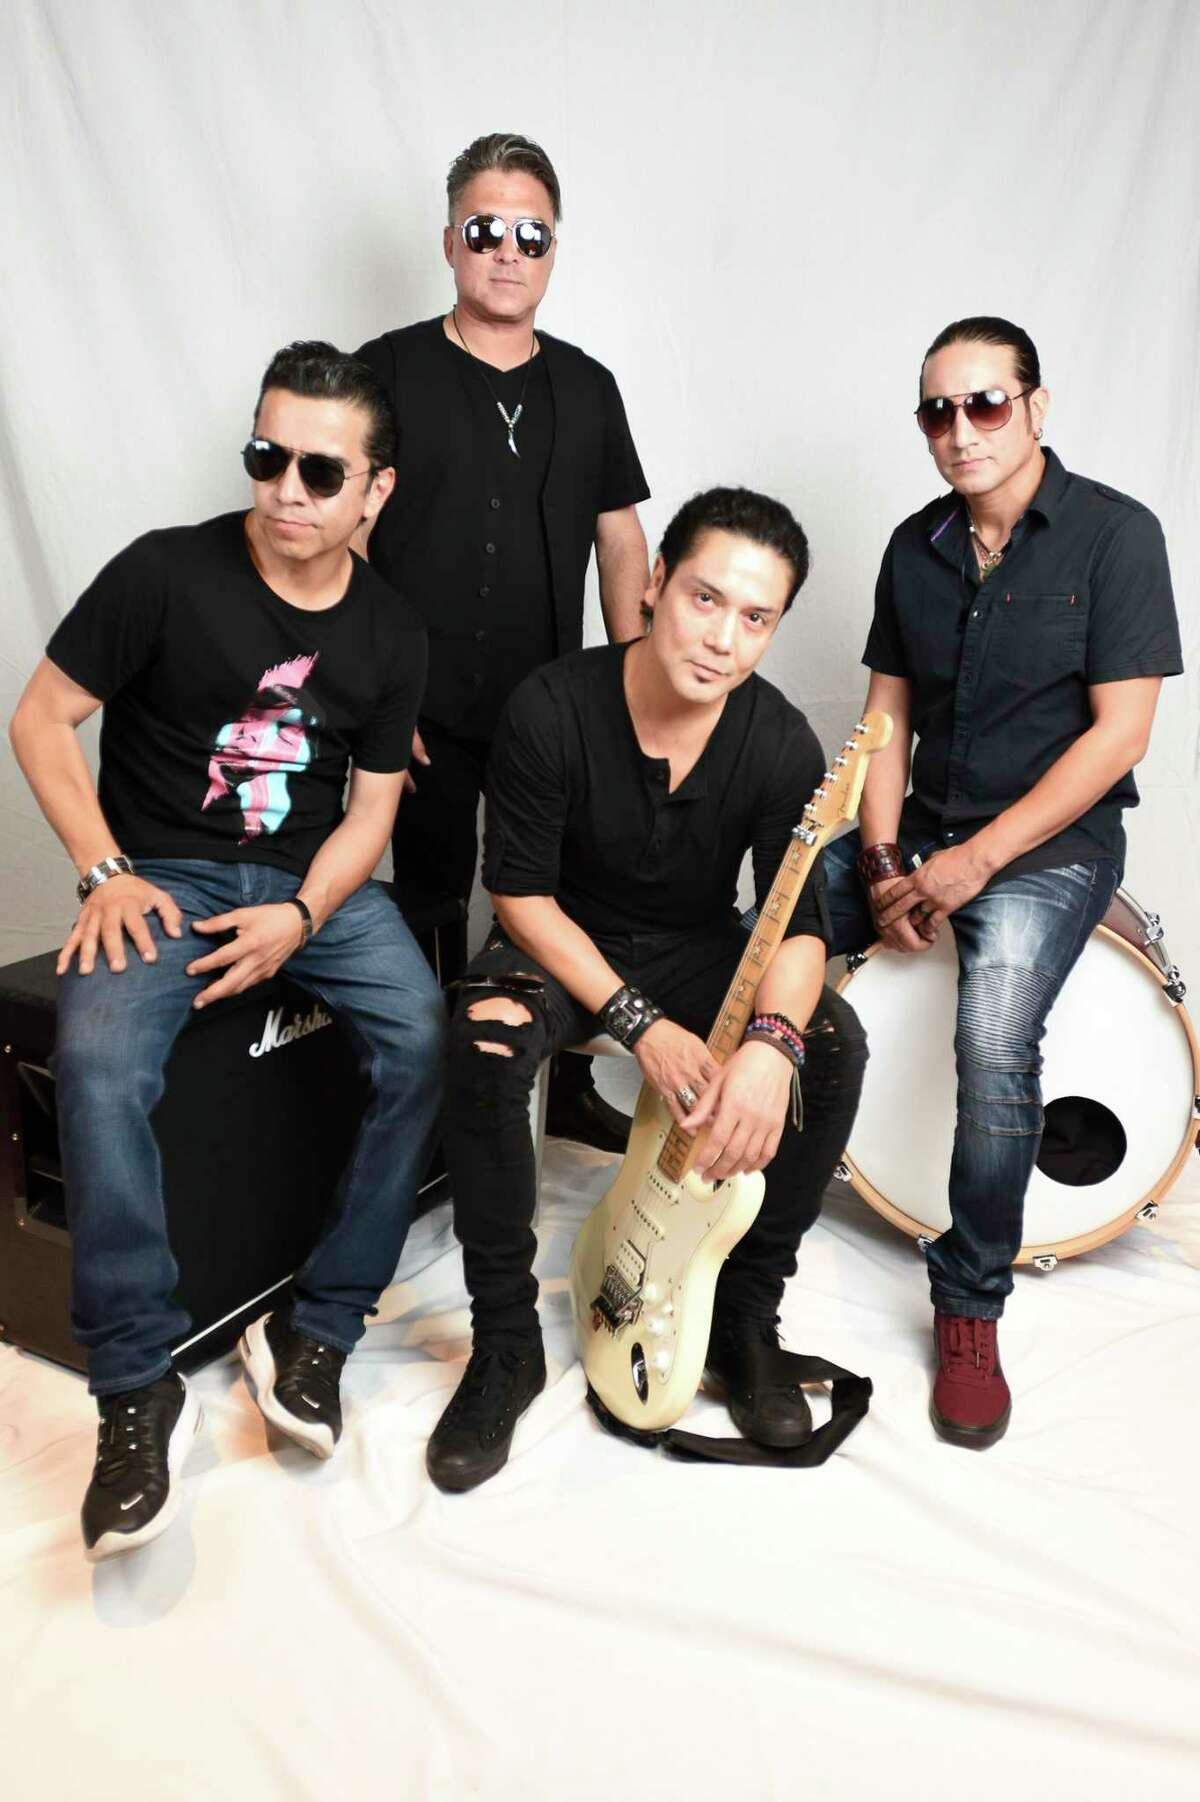 The Chris Perez Band is testing the waters again with a Houston show.